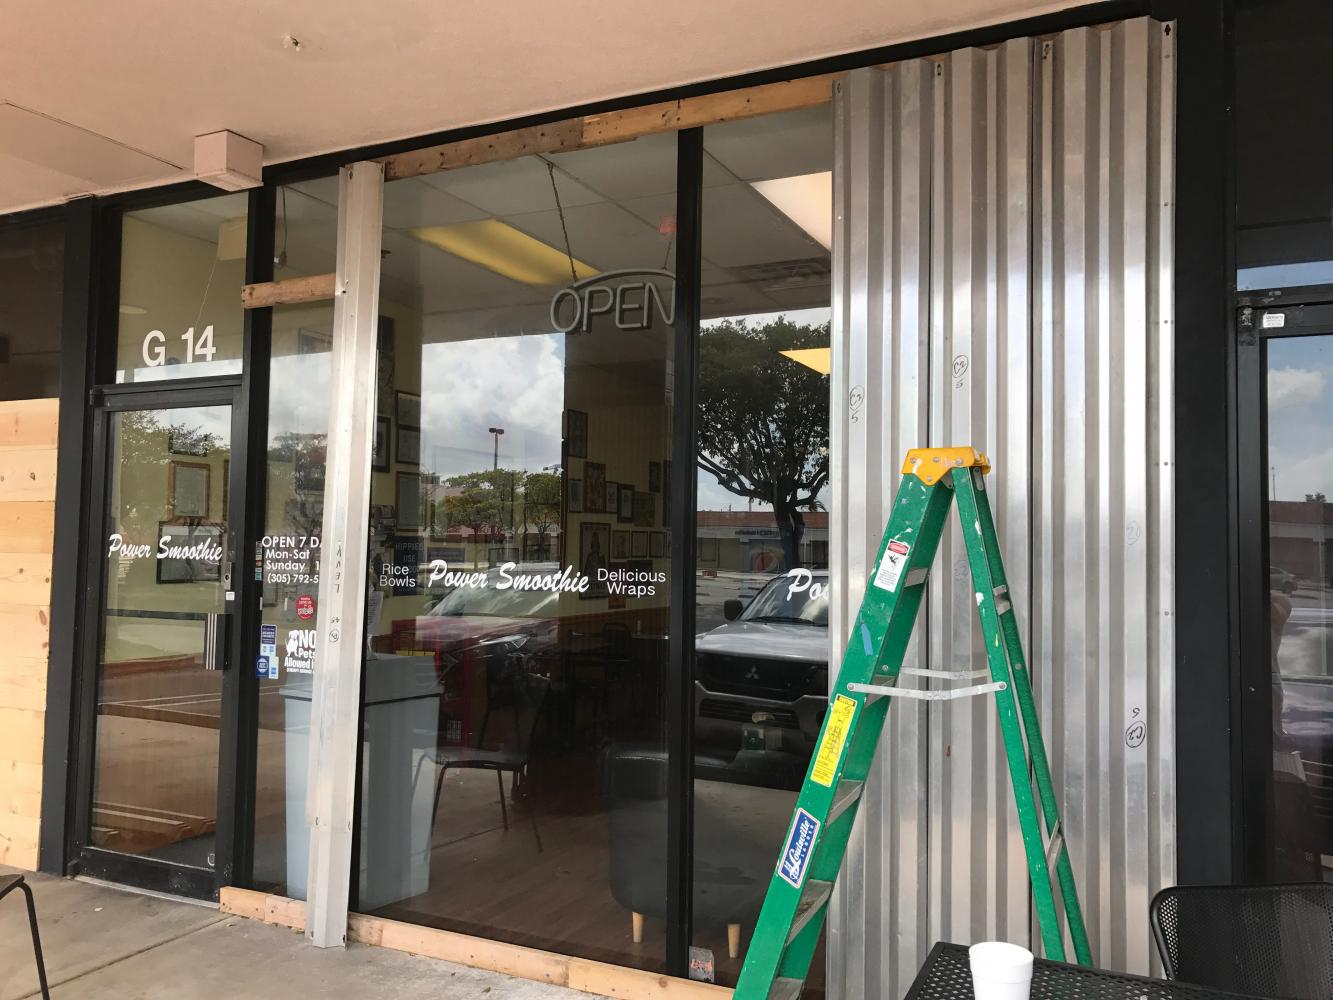 The well-known Aventura smoothie shop opened Monday, September 11, 2017, a day after Irma's Florida landfall. Before employees turned on the